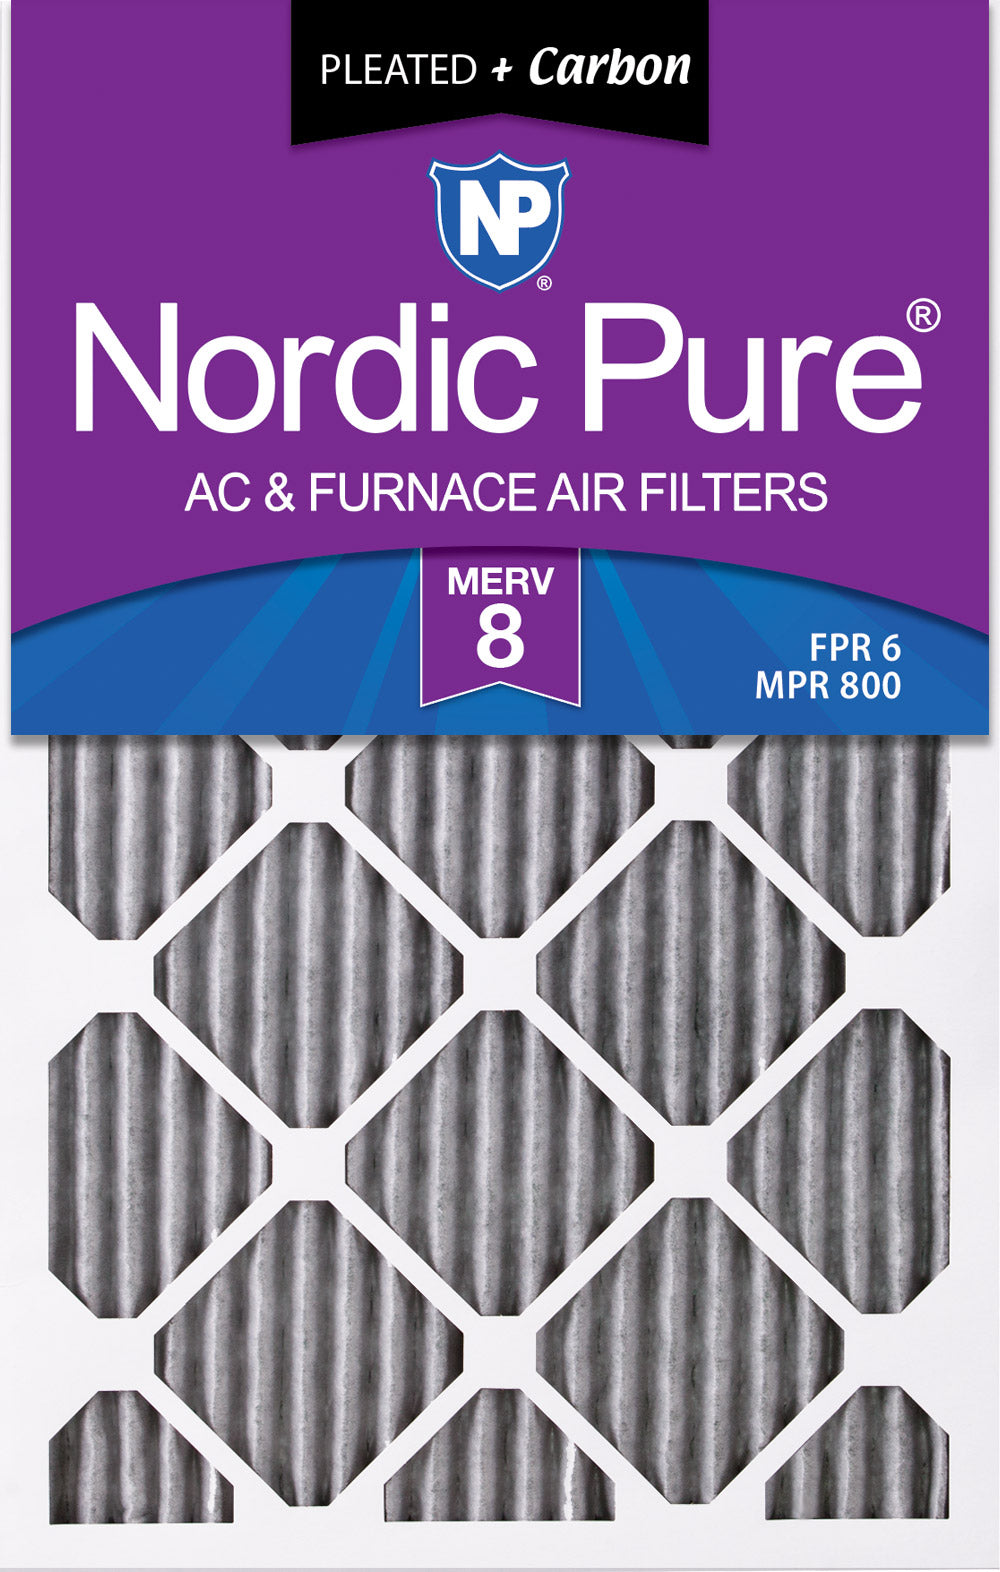 20x24x1 Furnace Air Filters MERV 8 Pleated Plus Carbon 3 Pack